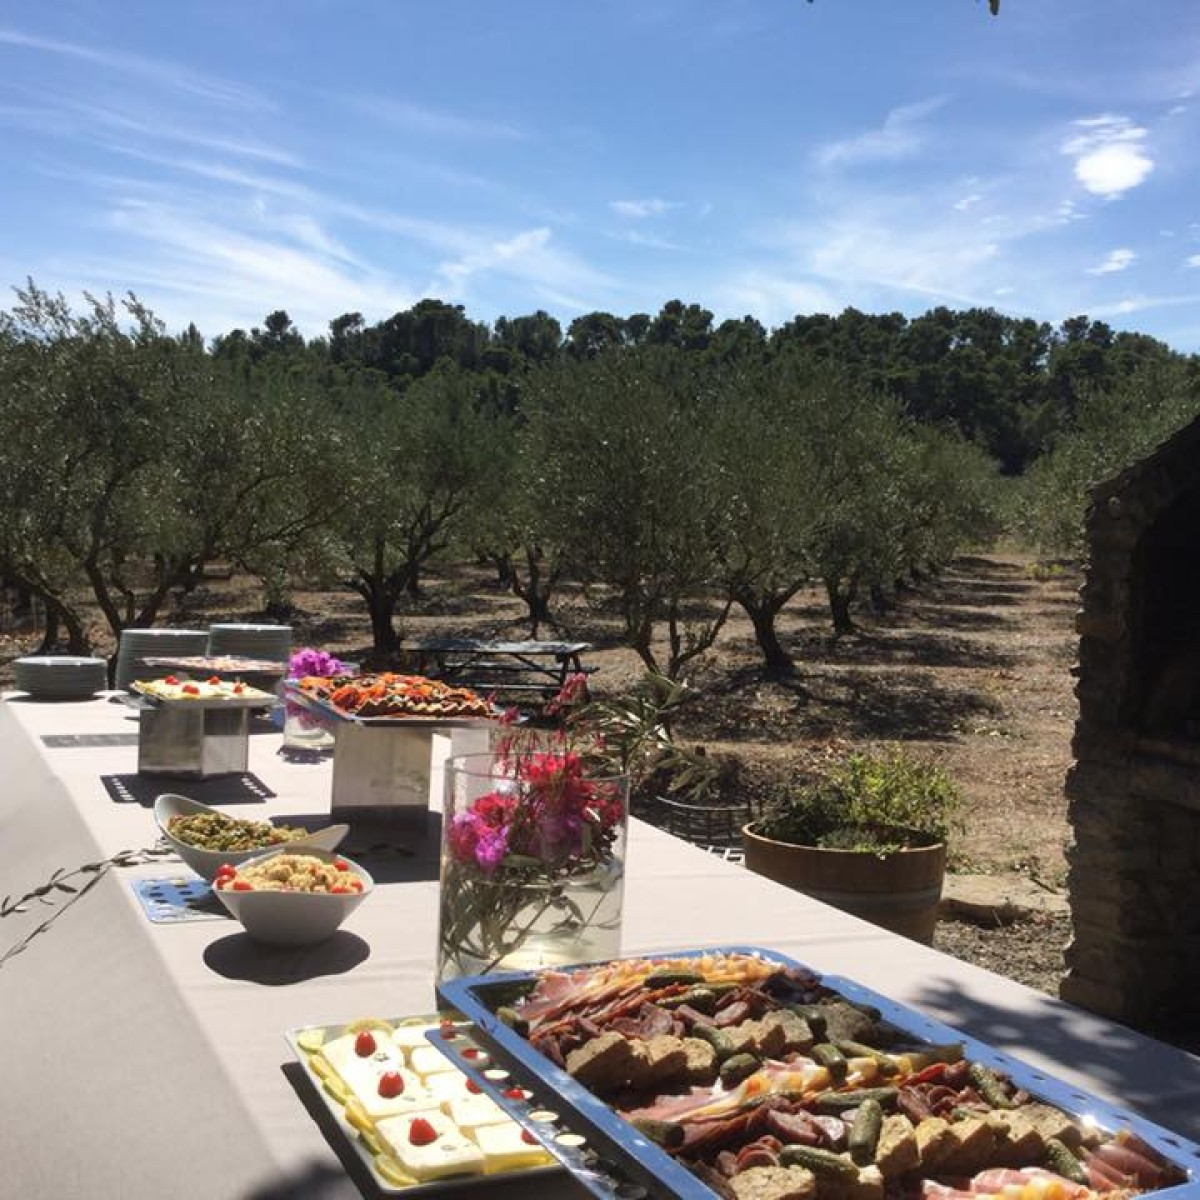 Event Lunch Winery DMC Mice Carcassonne Wine Tasting DMC Carcassonne A la Carte Events